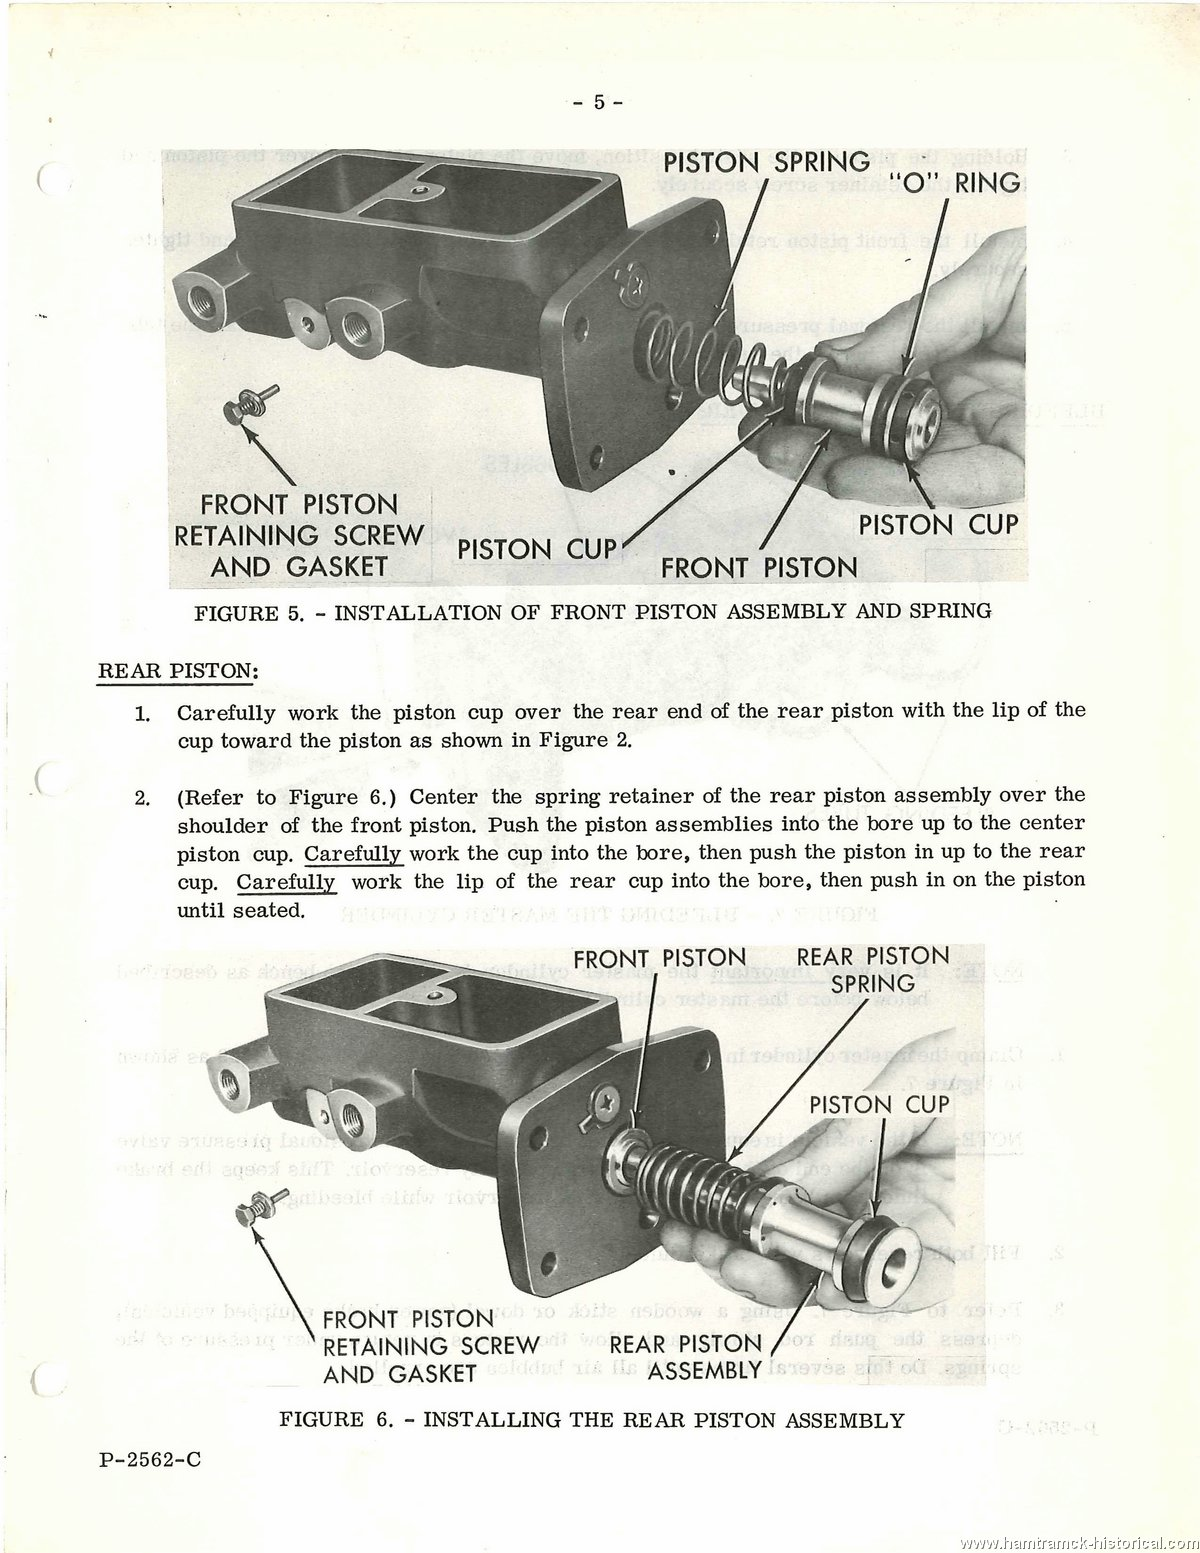 The 1970 Hamtramck Registry 1966 Tsbs And Related Material Index Page 3 8 Chrysler Engine Motor Mount Diagram 1 2 4